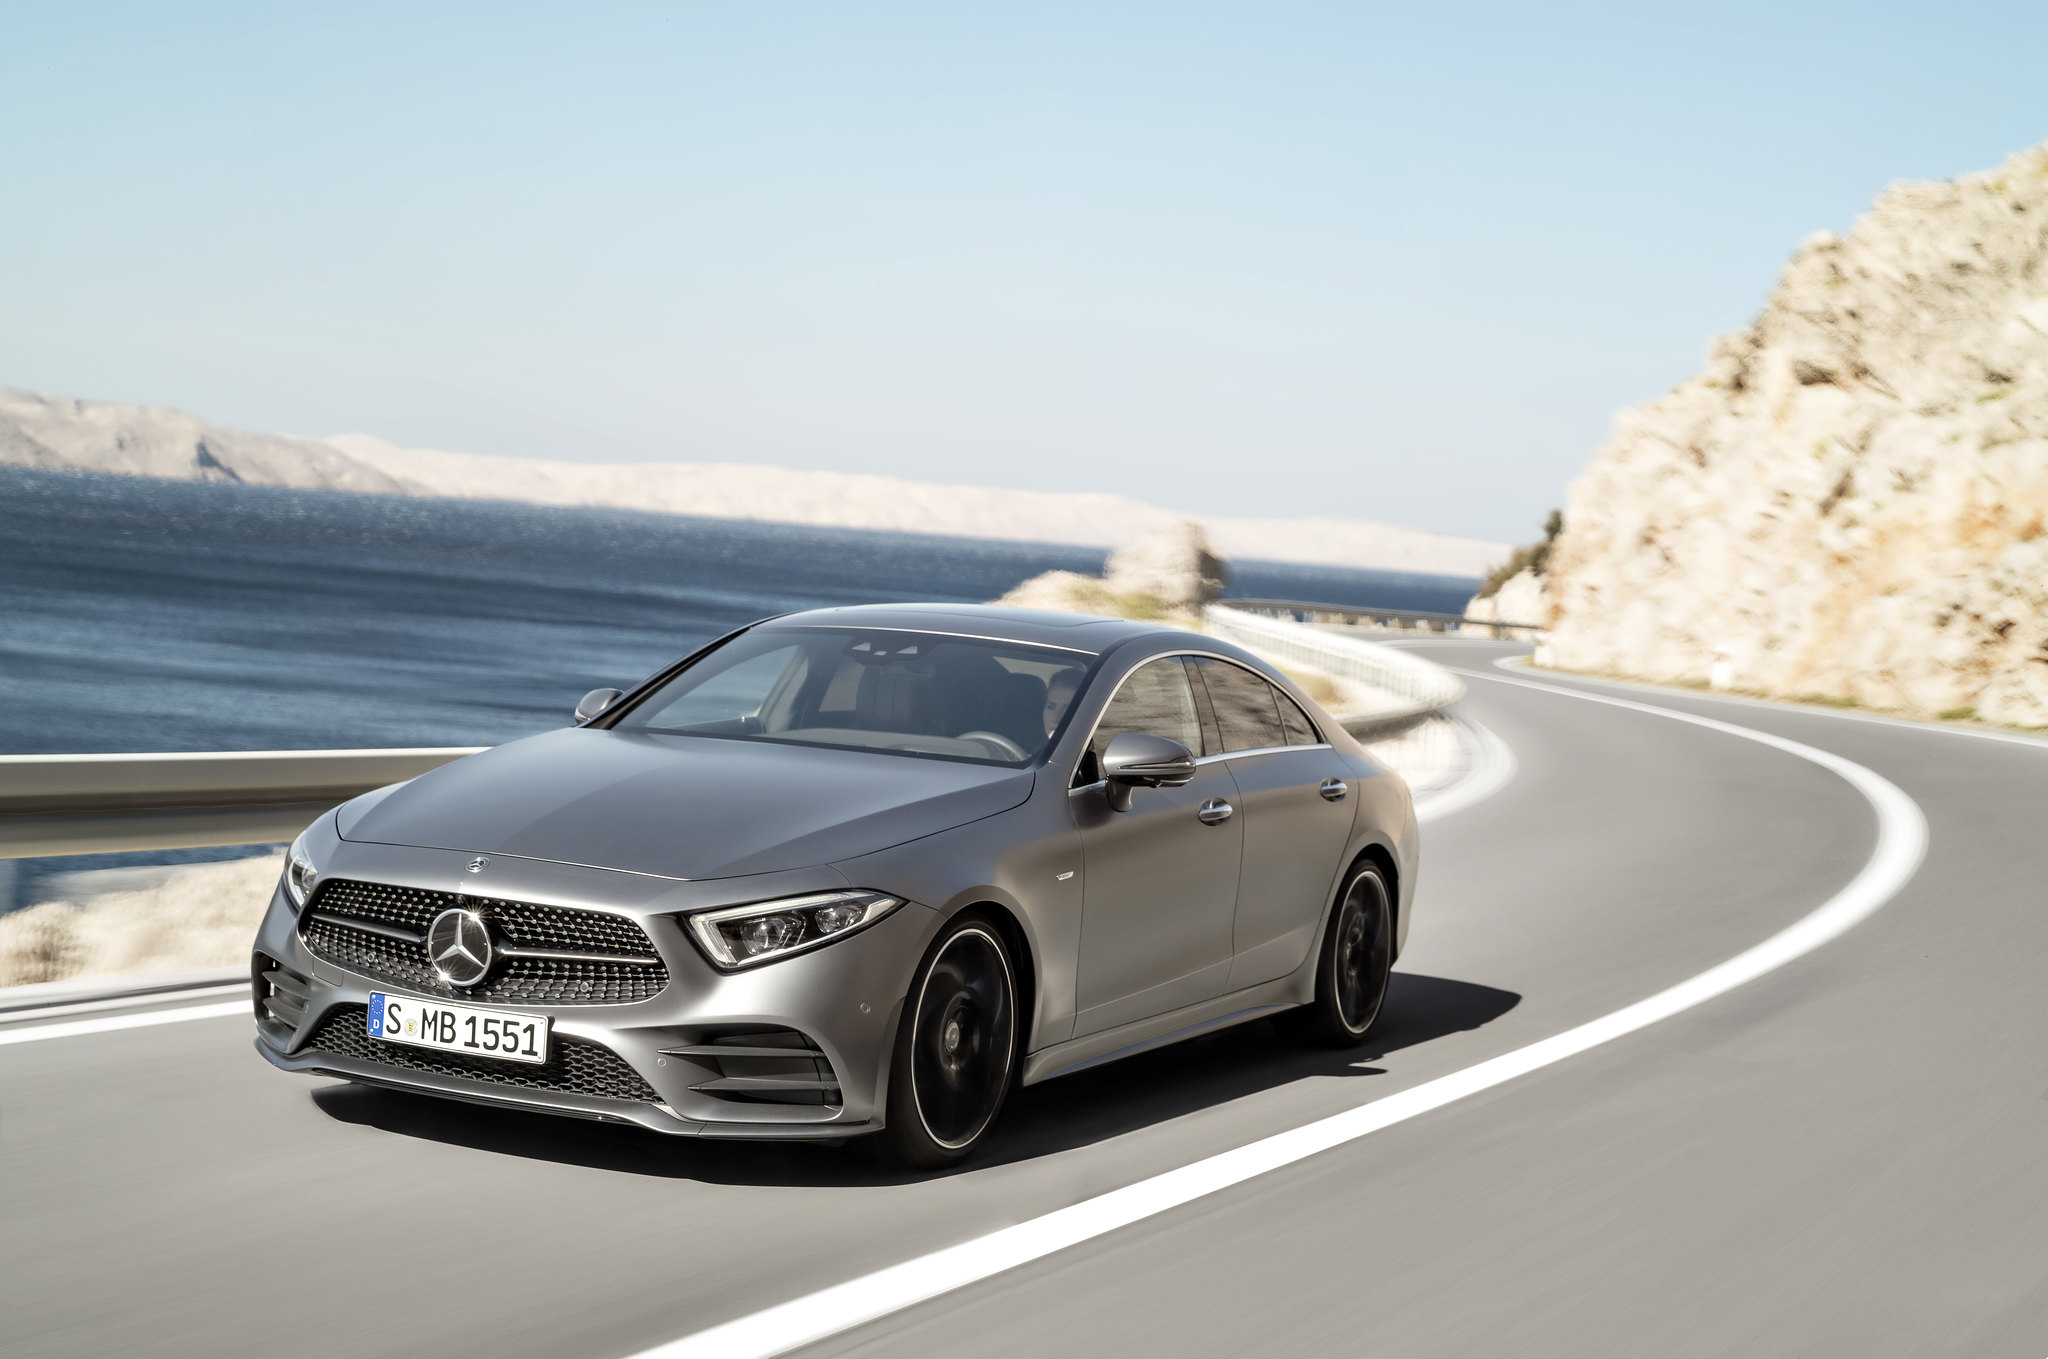 This is the 2019 Mercedes-Benz CLS450